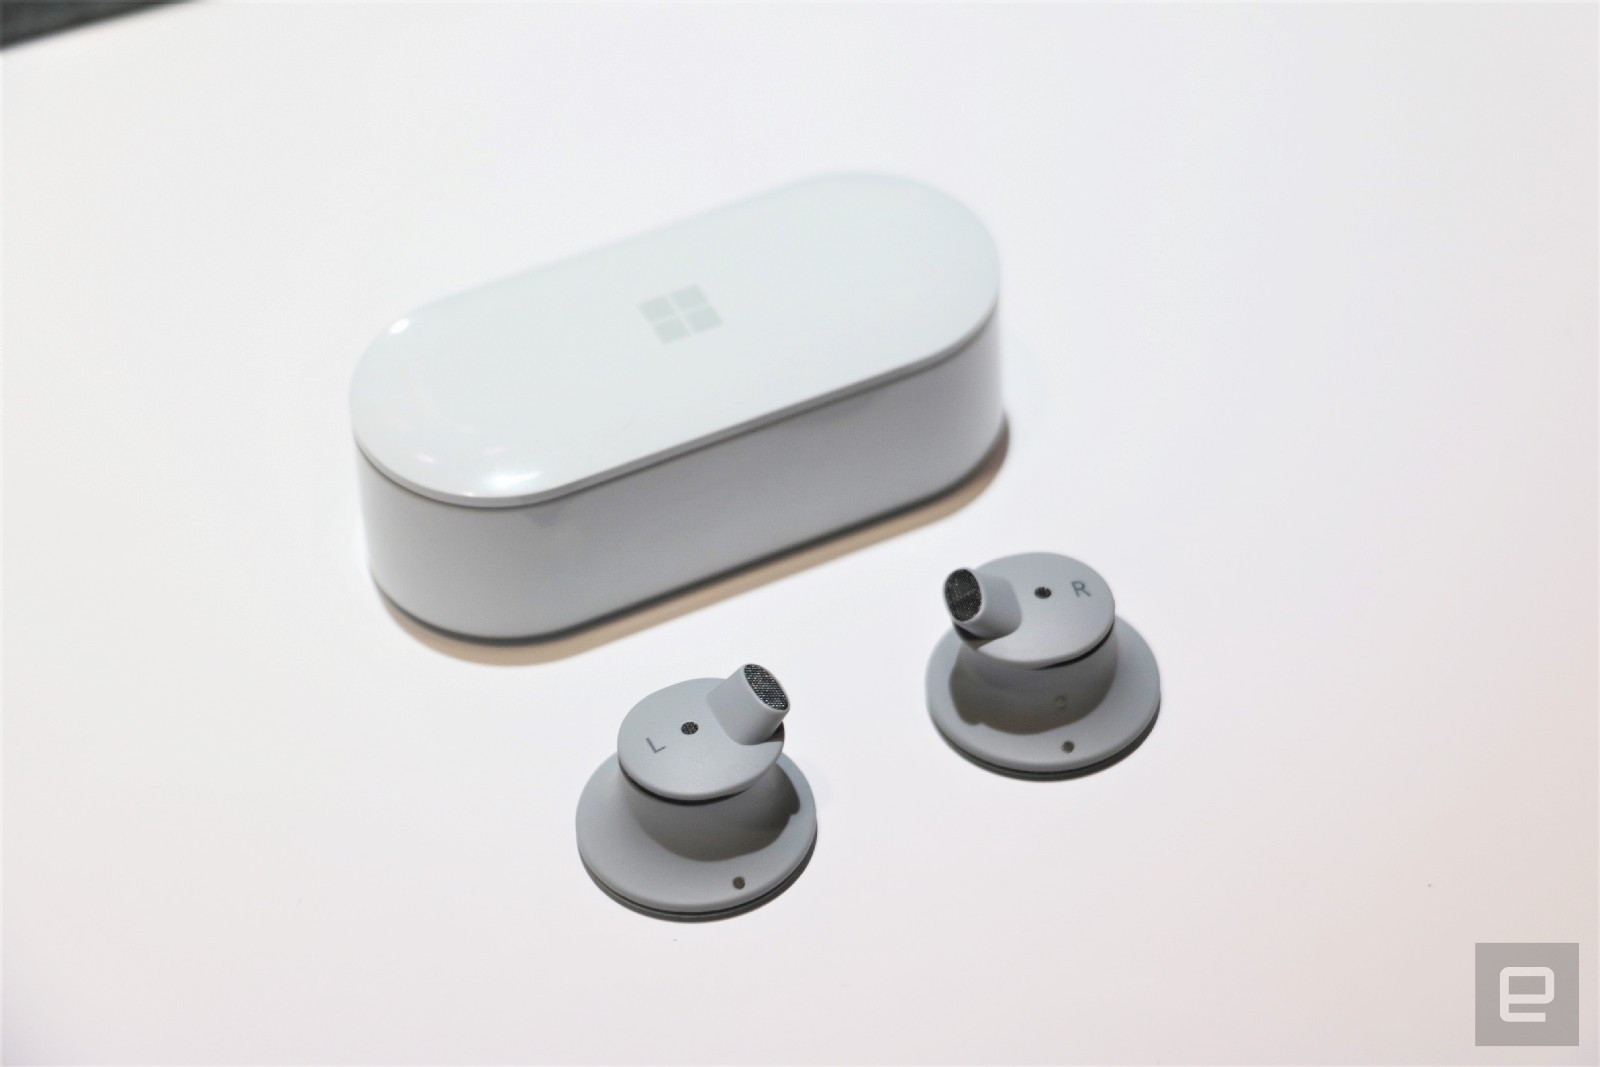 Surface Earbuds via Engadget